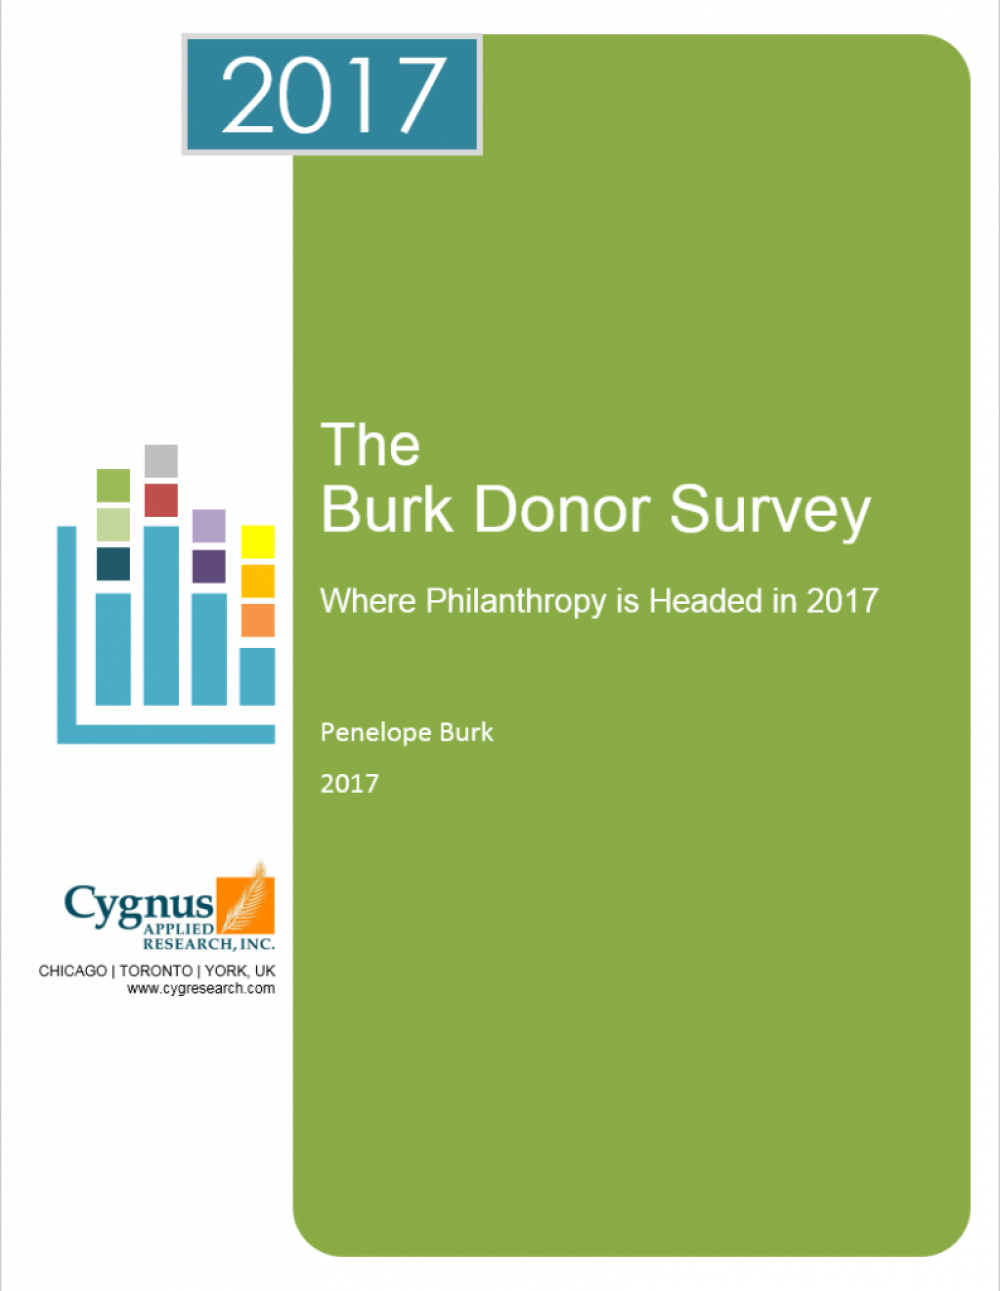 2017 The Burk Donor Survey